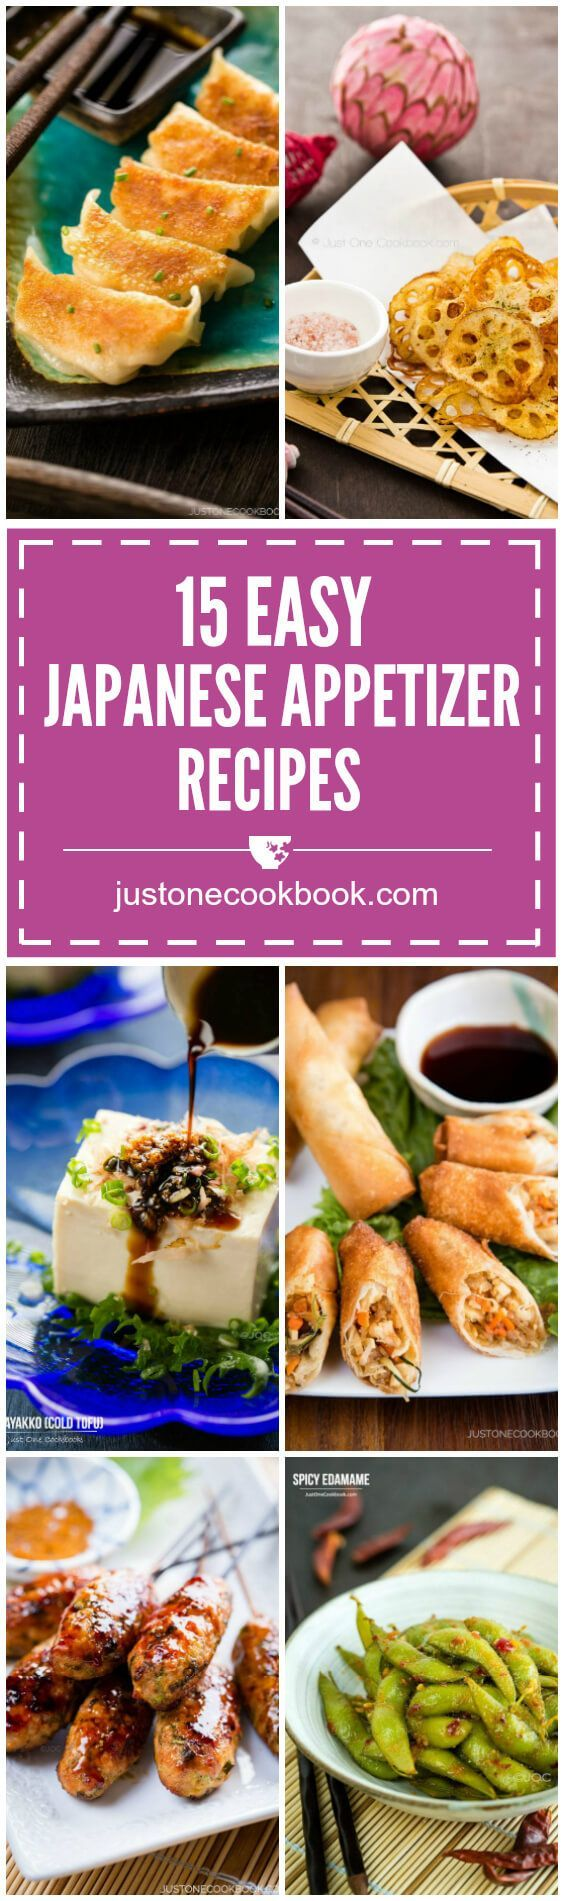 15 easy japanese appetizer recipes japanese appetizers japanese 15 easy japanese appetizer recipes forumfinder Gallery